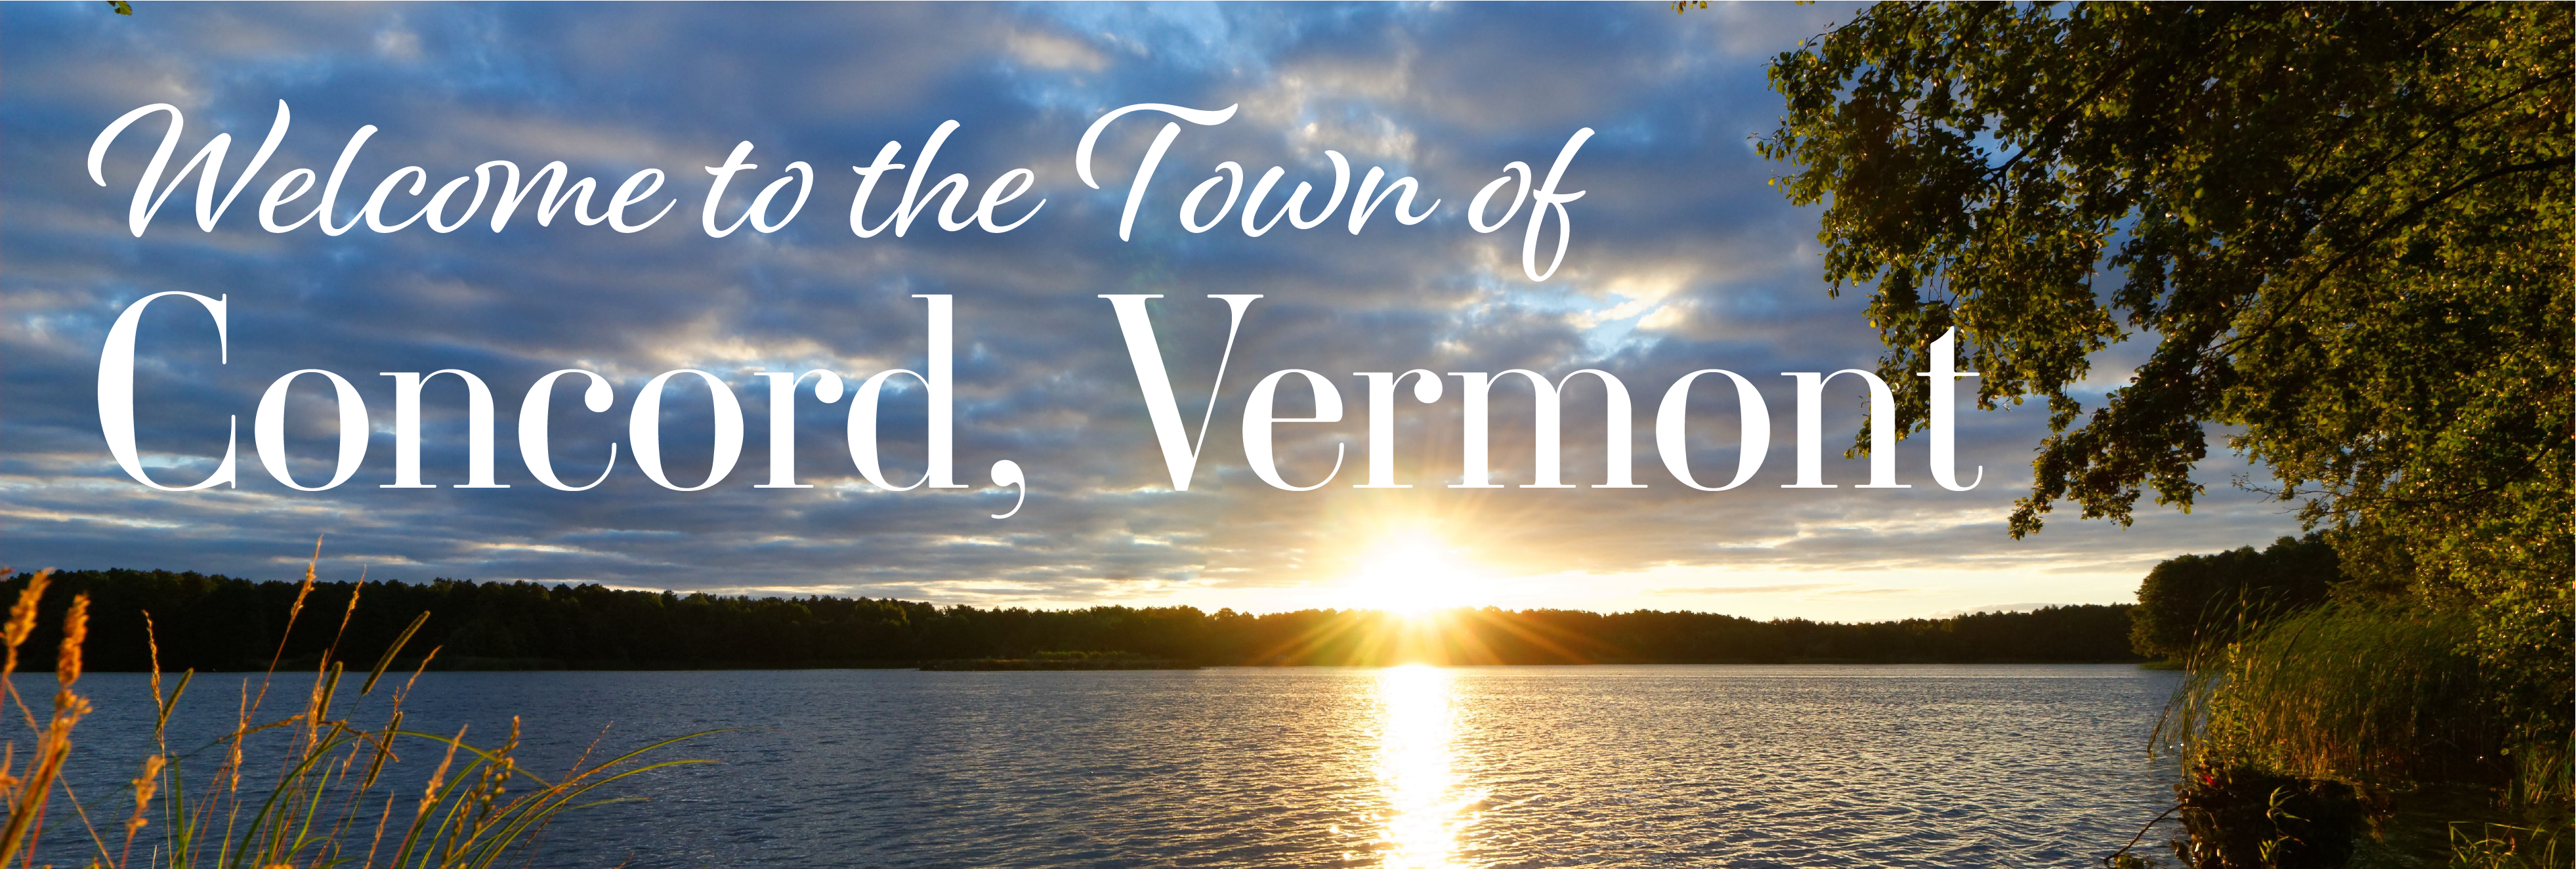 Town of Concord, Vermont